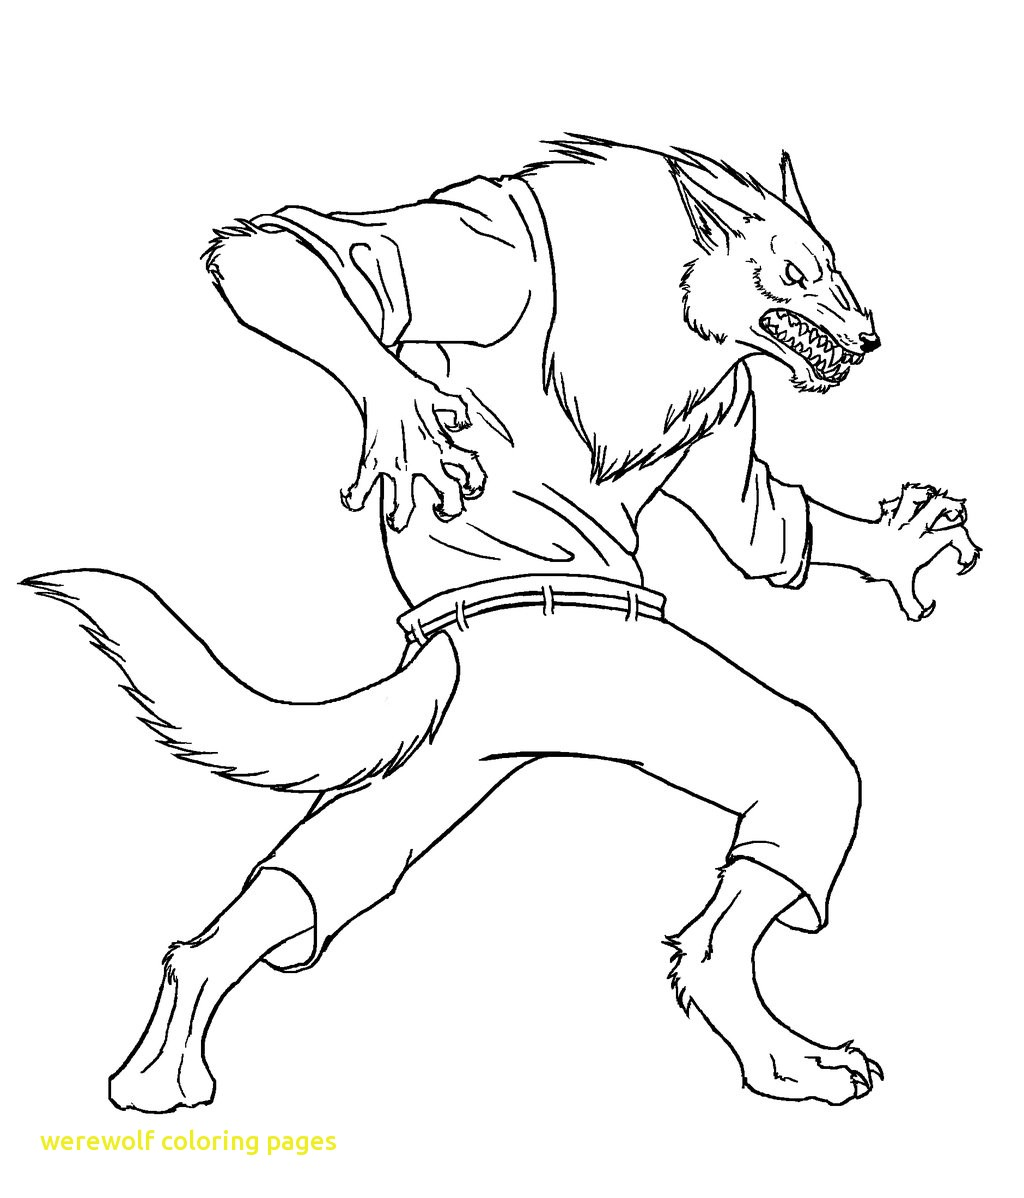 1024x1198 Werewolf Coloring Pages With Werewolf Coloring Pages For Kids